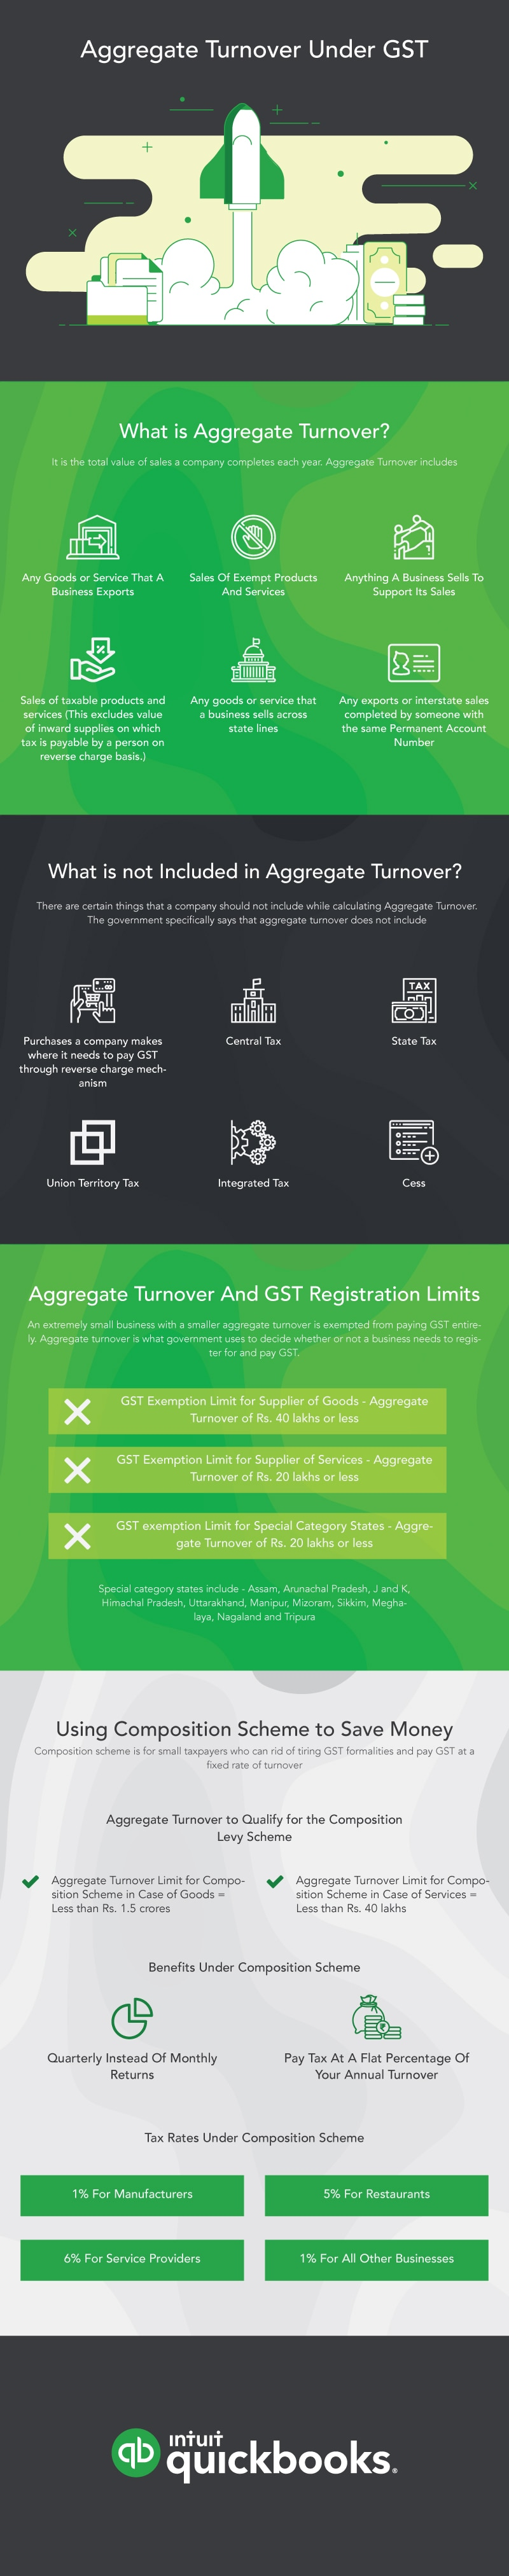 Aggregate Turnover Under GST Infographic